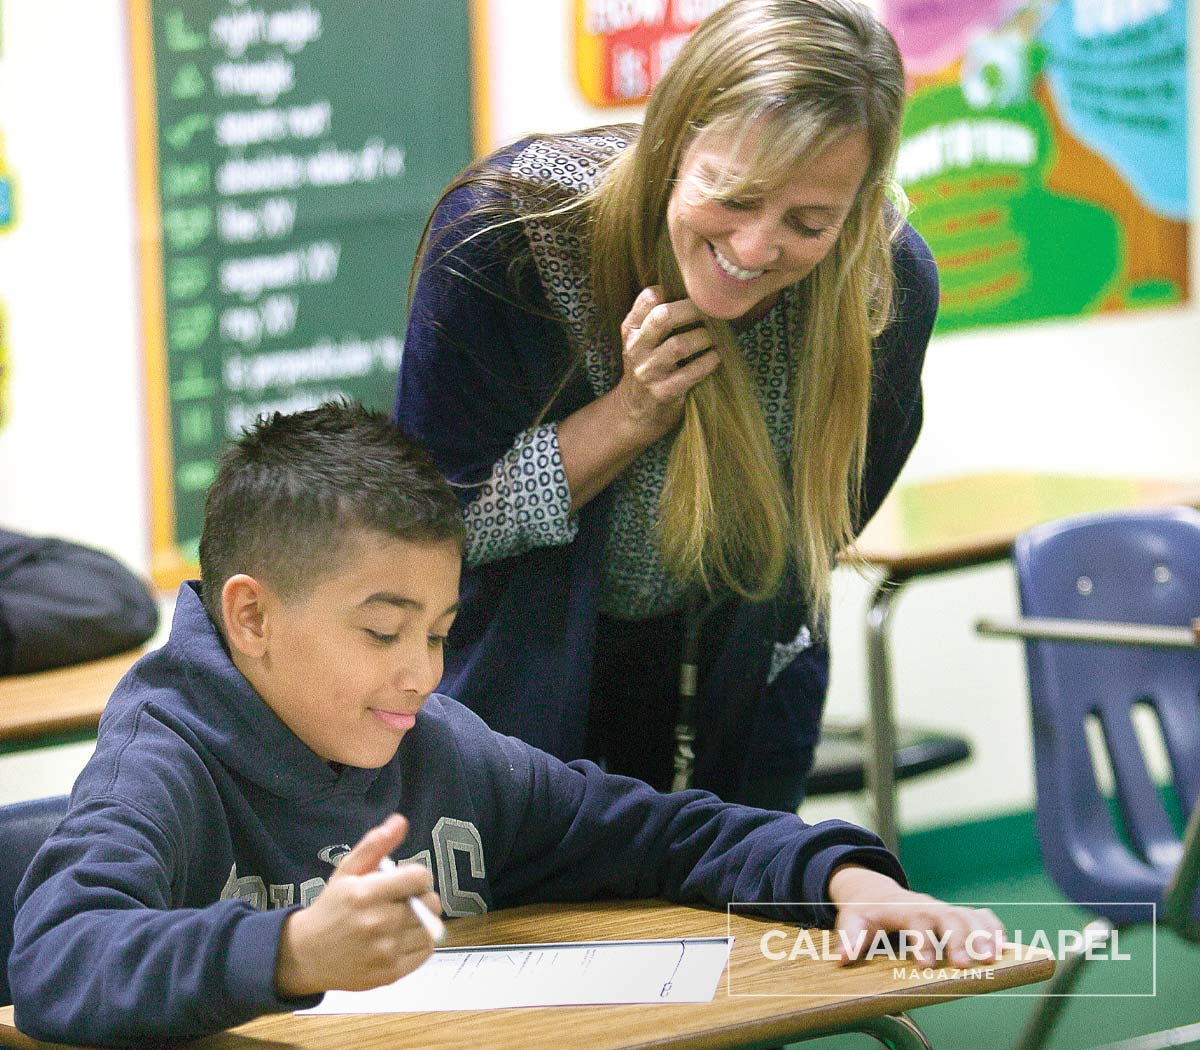 Woman helping boy with classwork